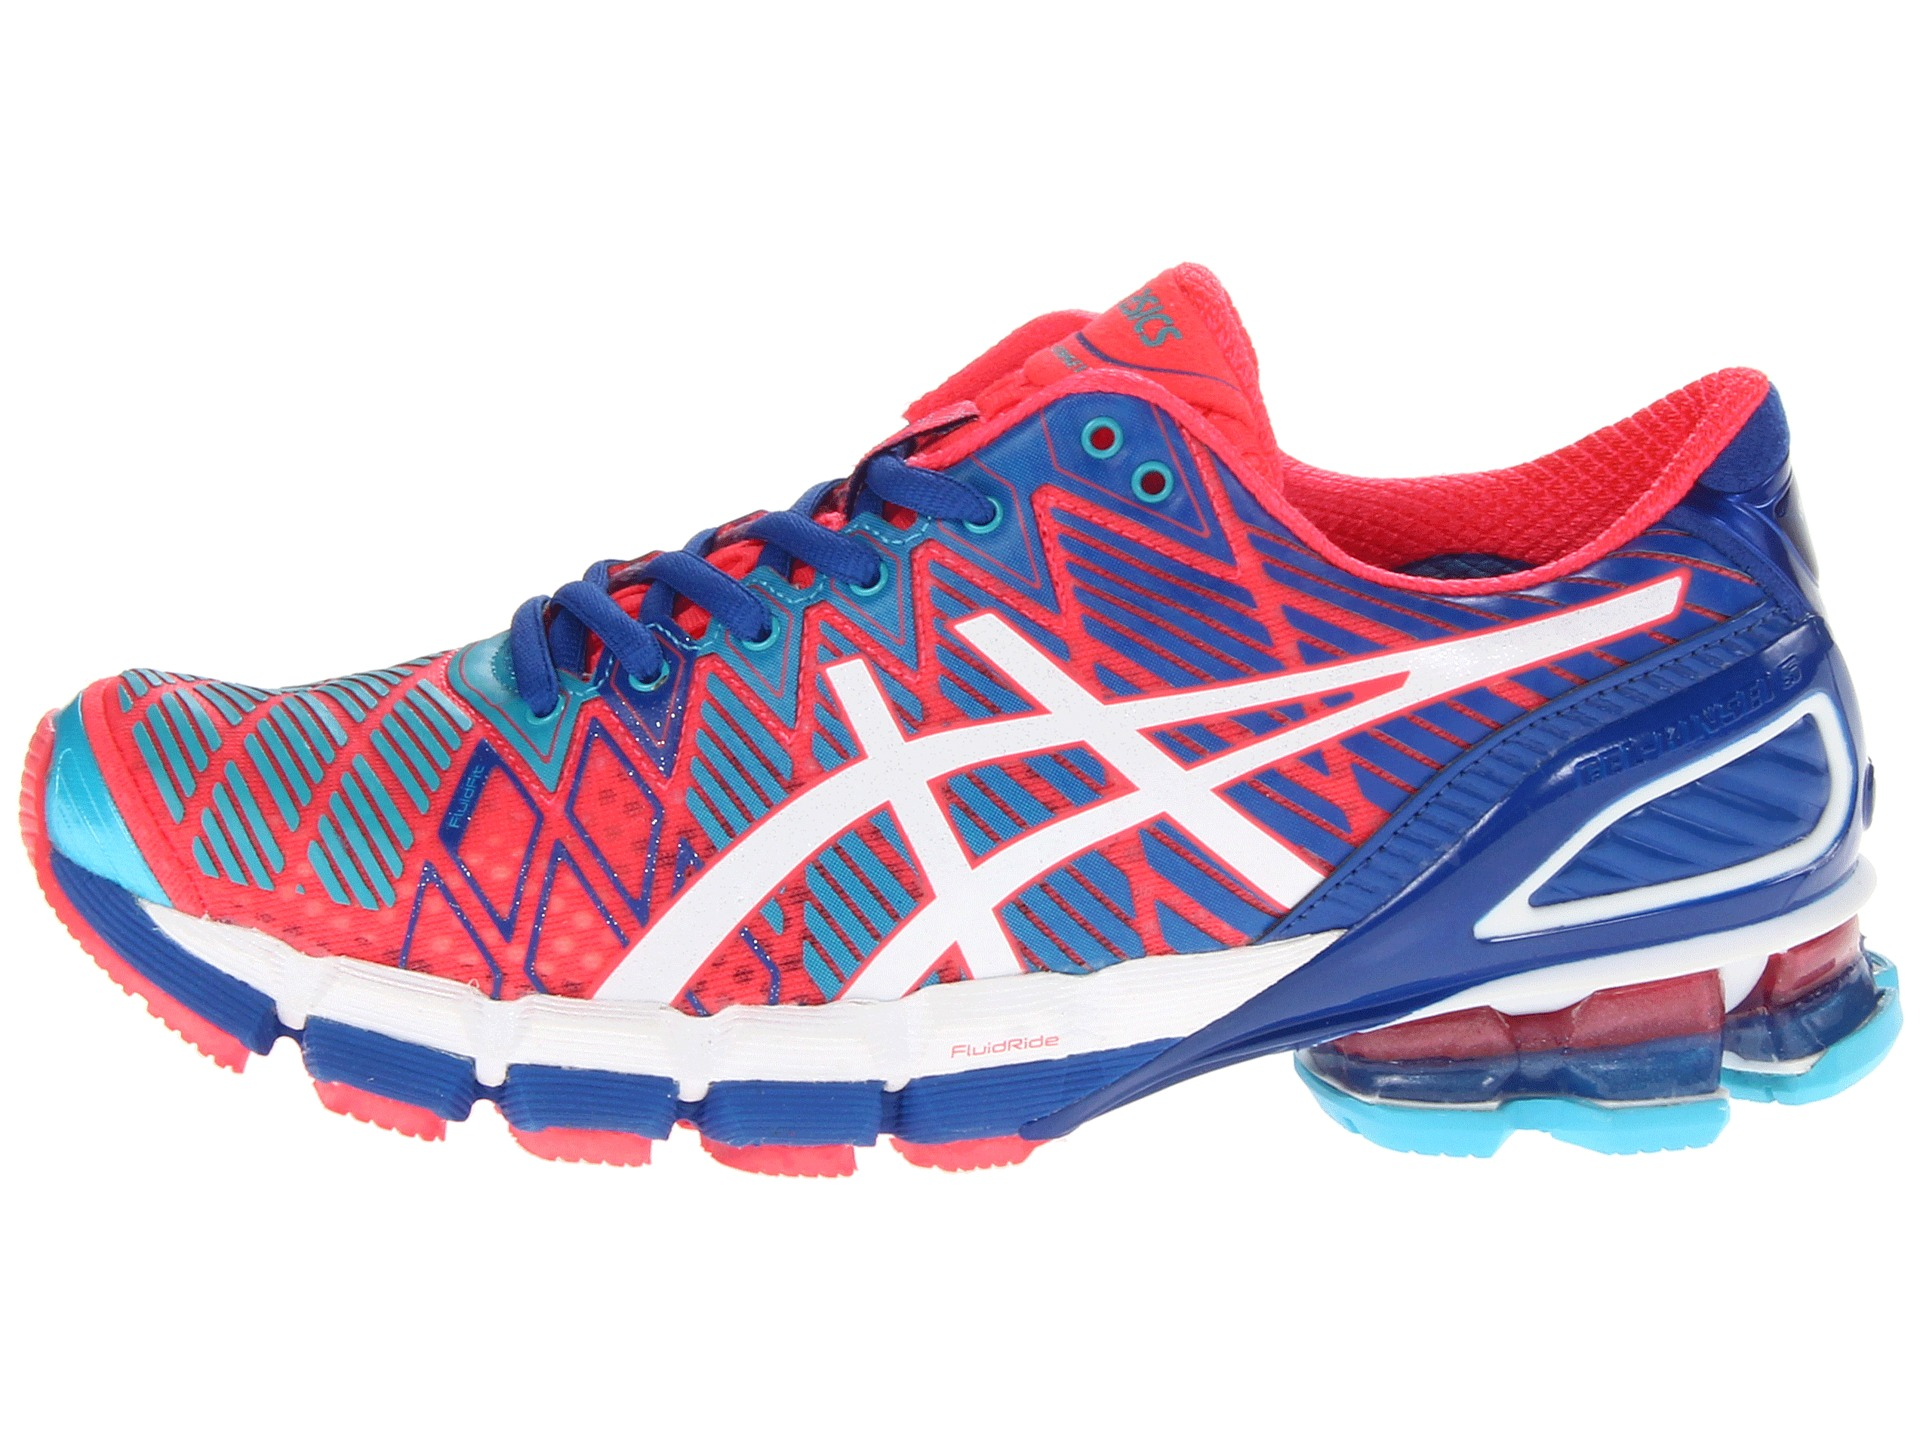 eastbay womens asics shoes homme